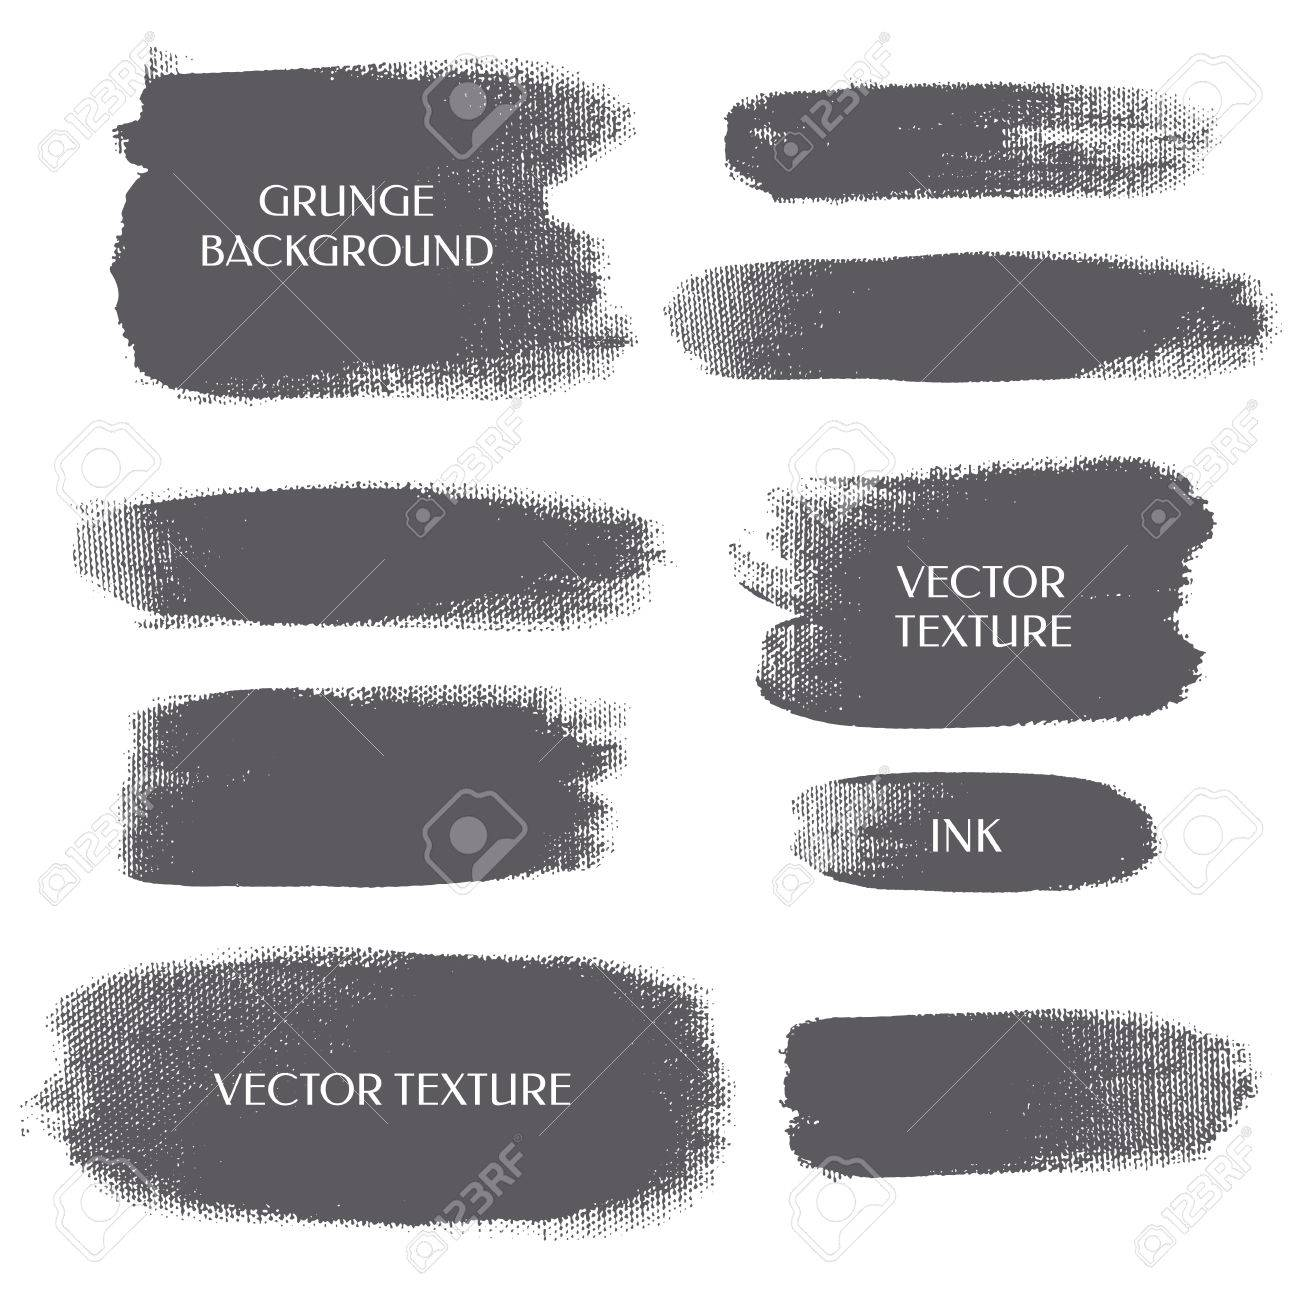 Set of grunge background. Silhouette strip. Vector texture. Brush ink - rough, artistic edges. - 61240503